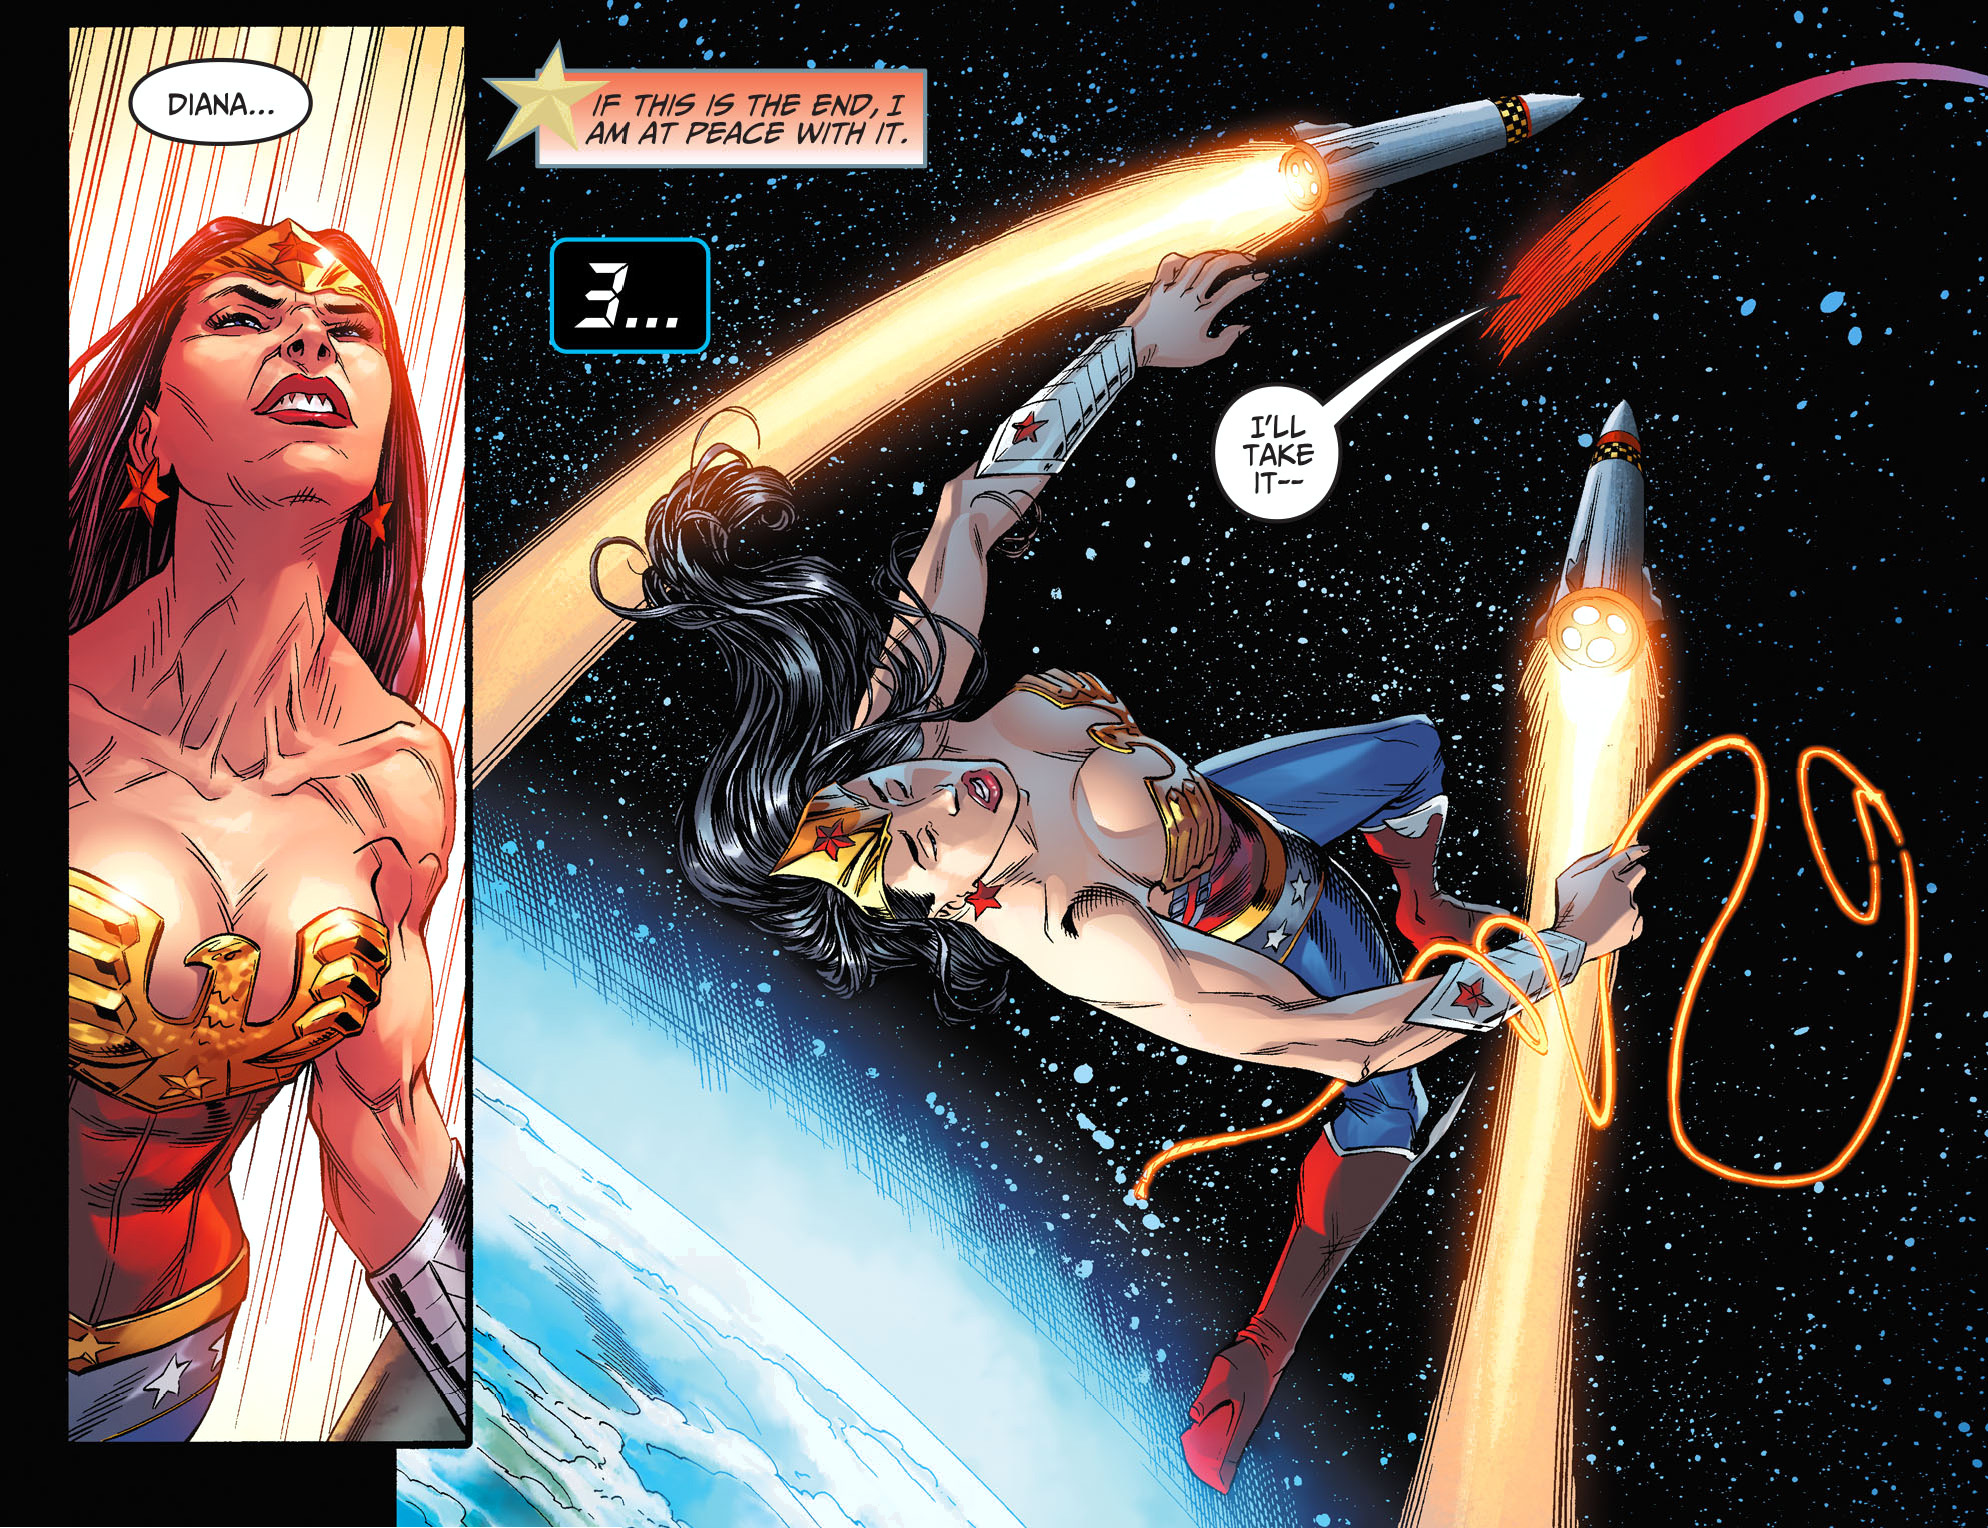 wonder woman vs 2 nuclear missiles 3